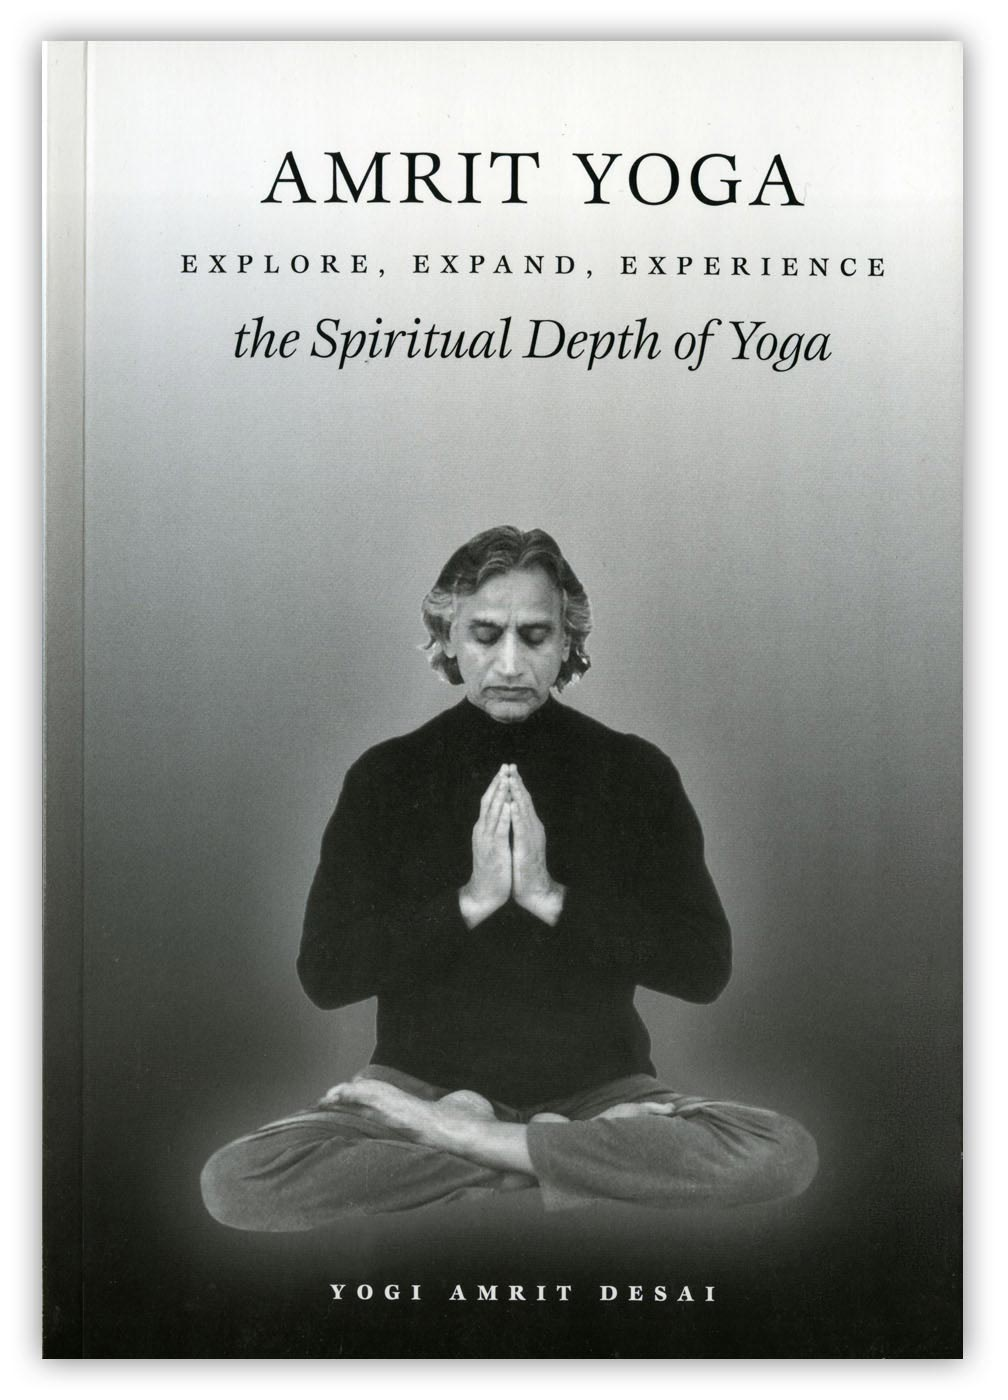 Amrit Yoga: Explore, Expand, Experience the Spiritual Depth of Yoga by Yogi Amrit Desai